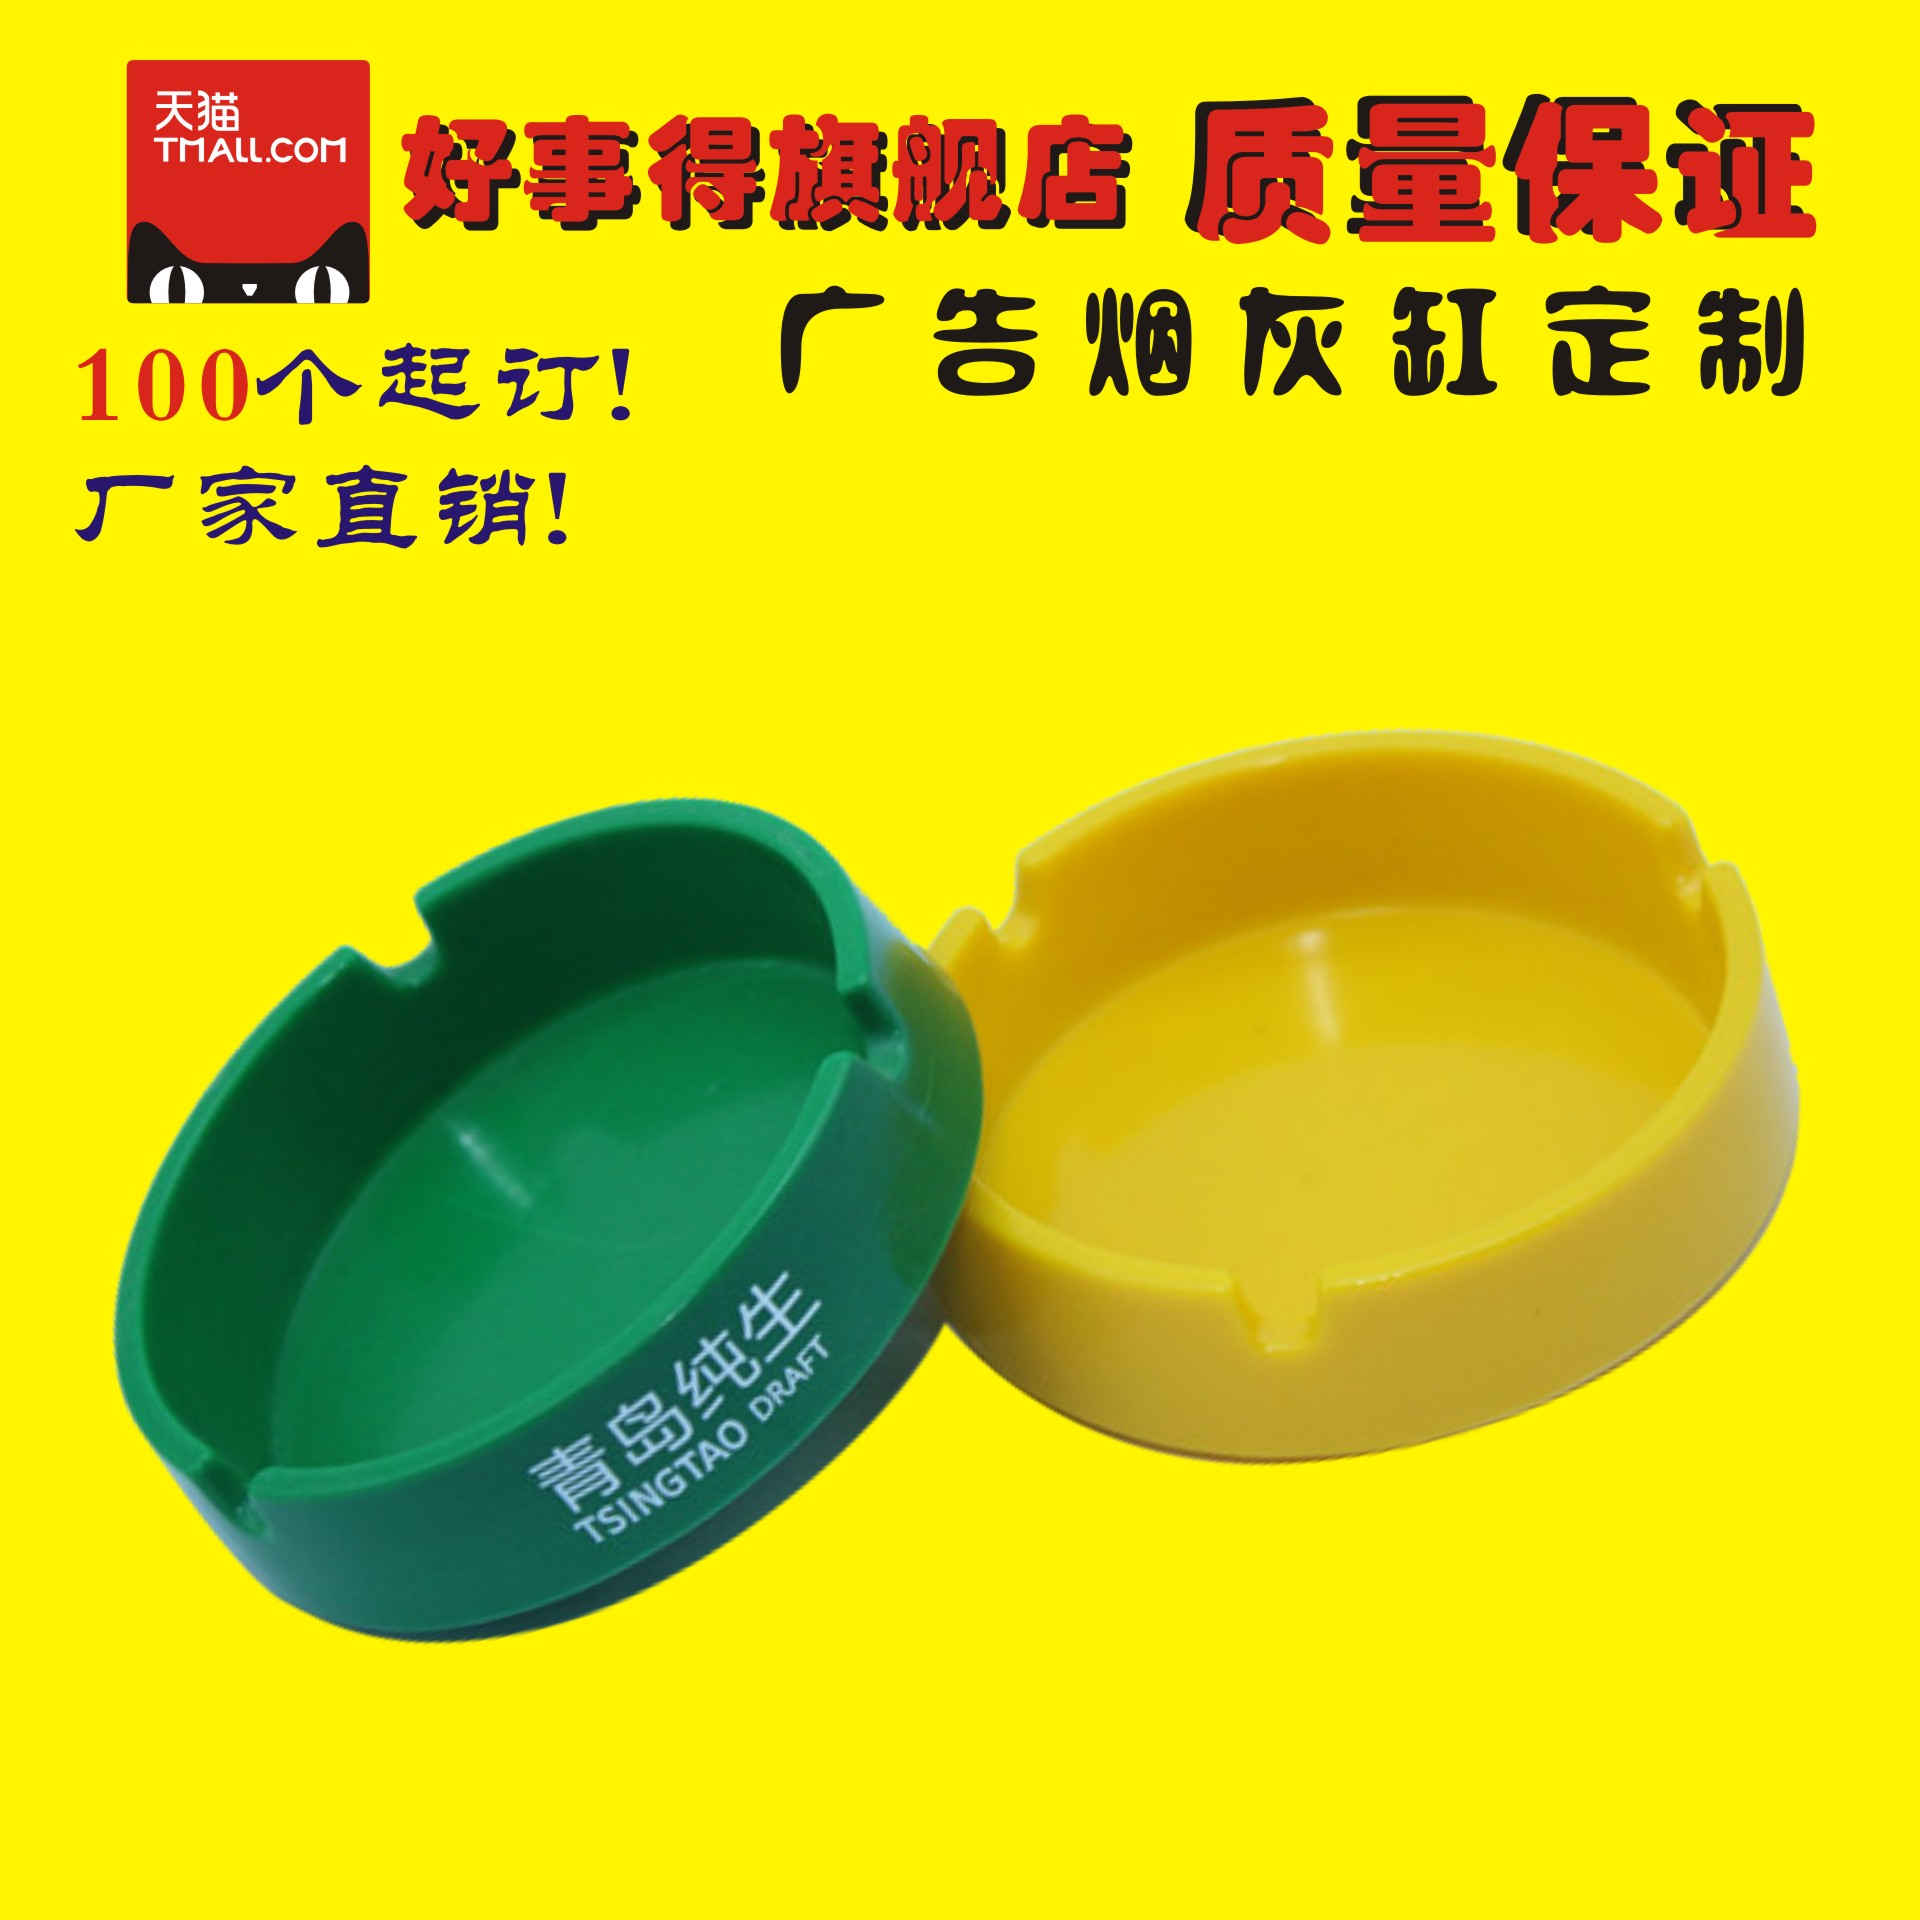 Plastic melamine ashtray ashtray promotional company manufacturers custom logo promotional advertising small ceremony